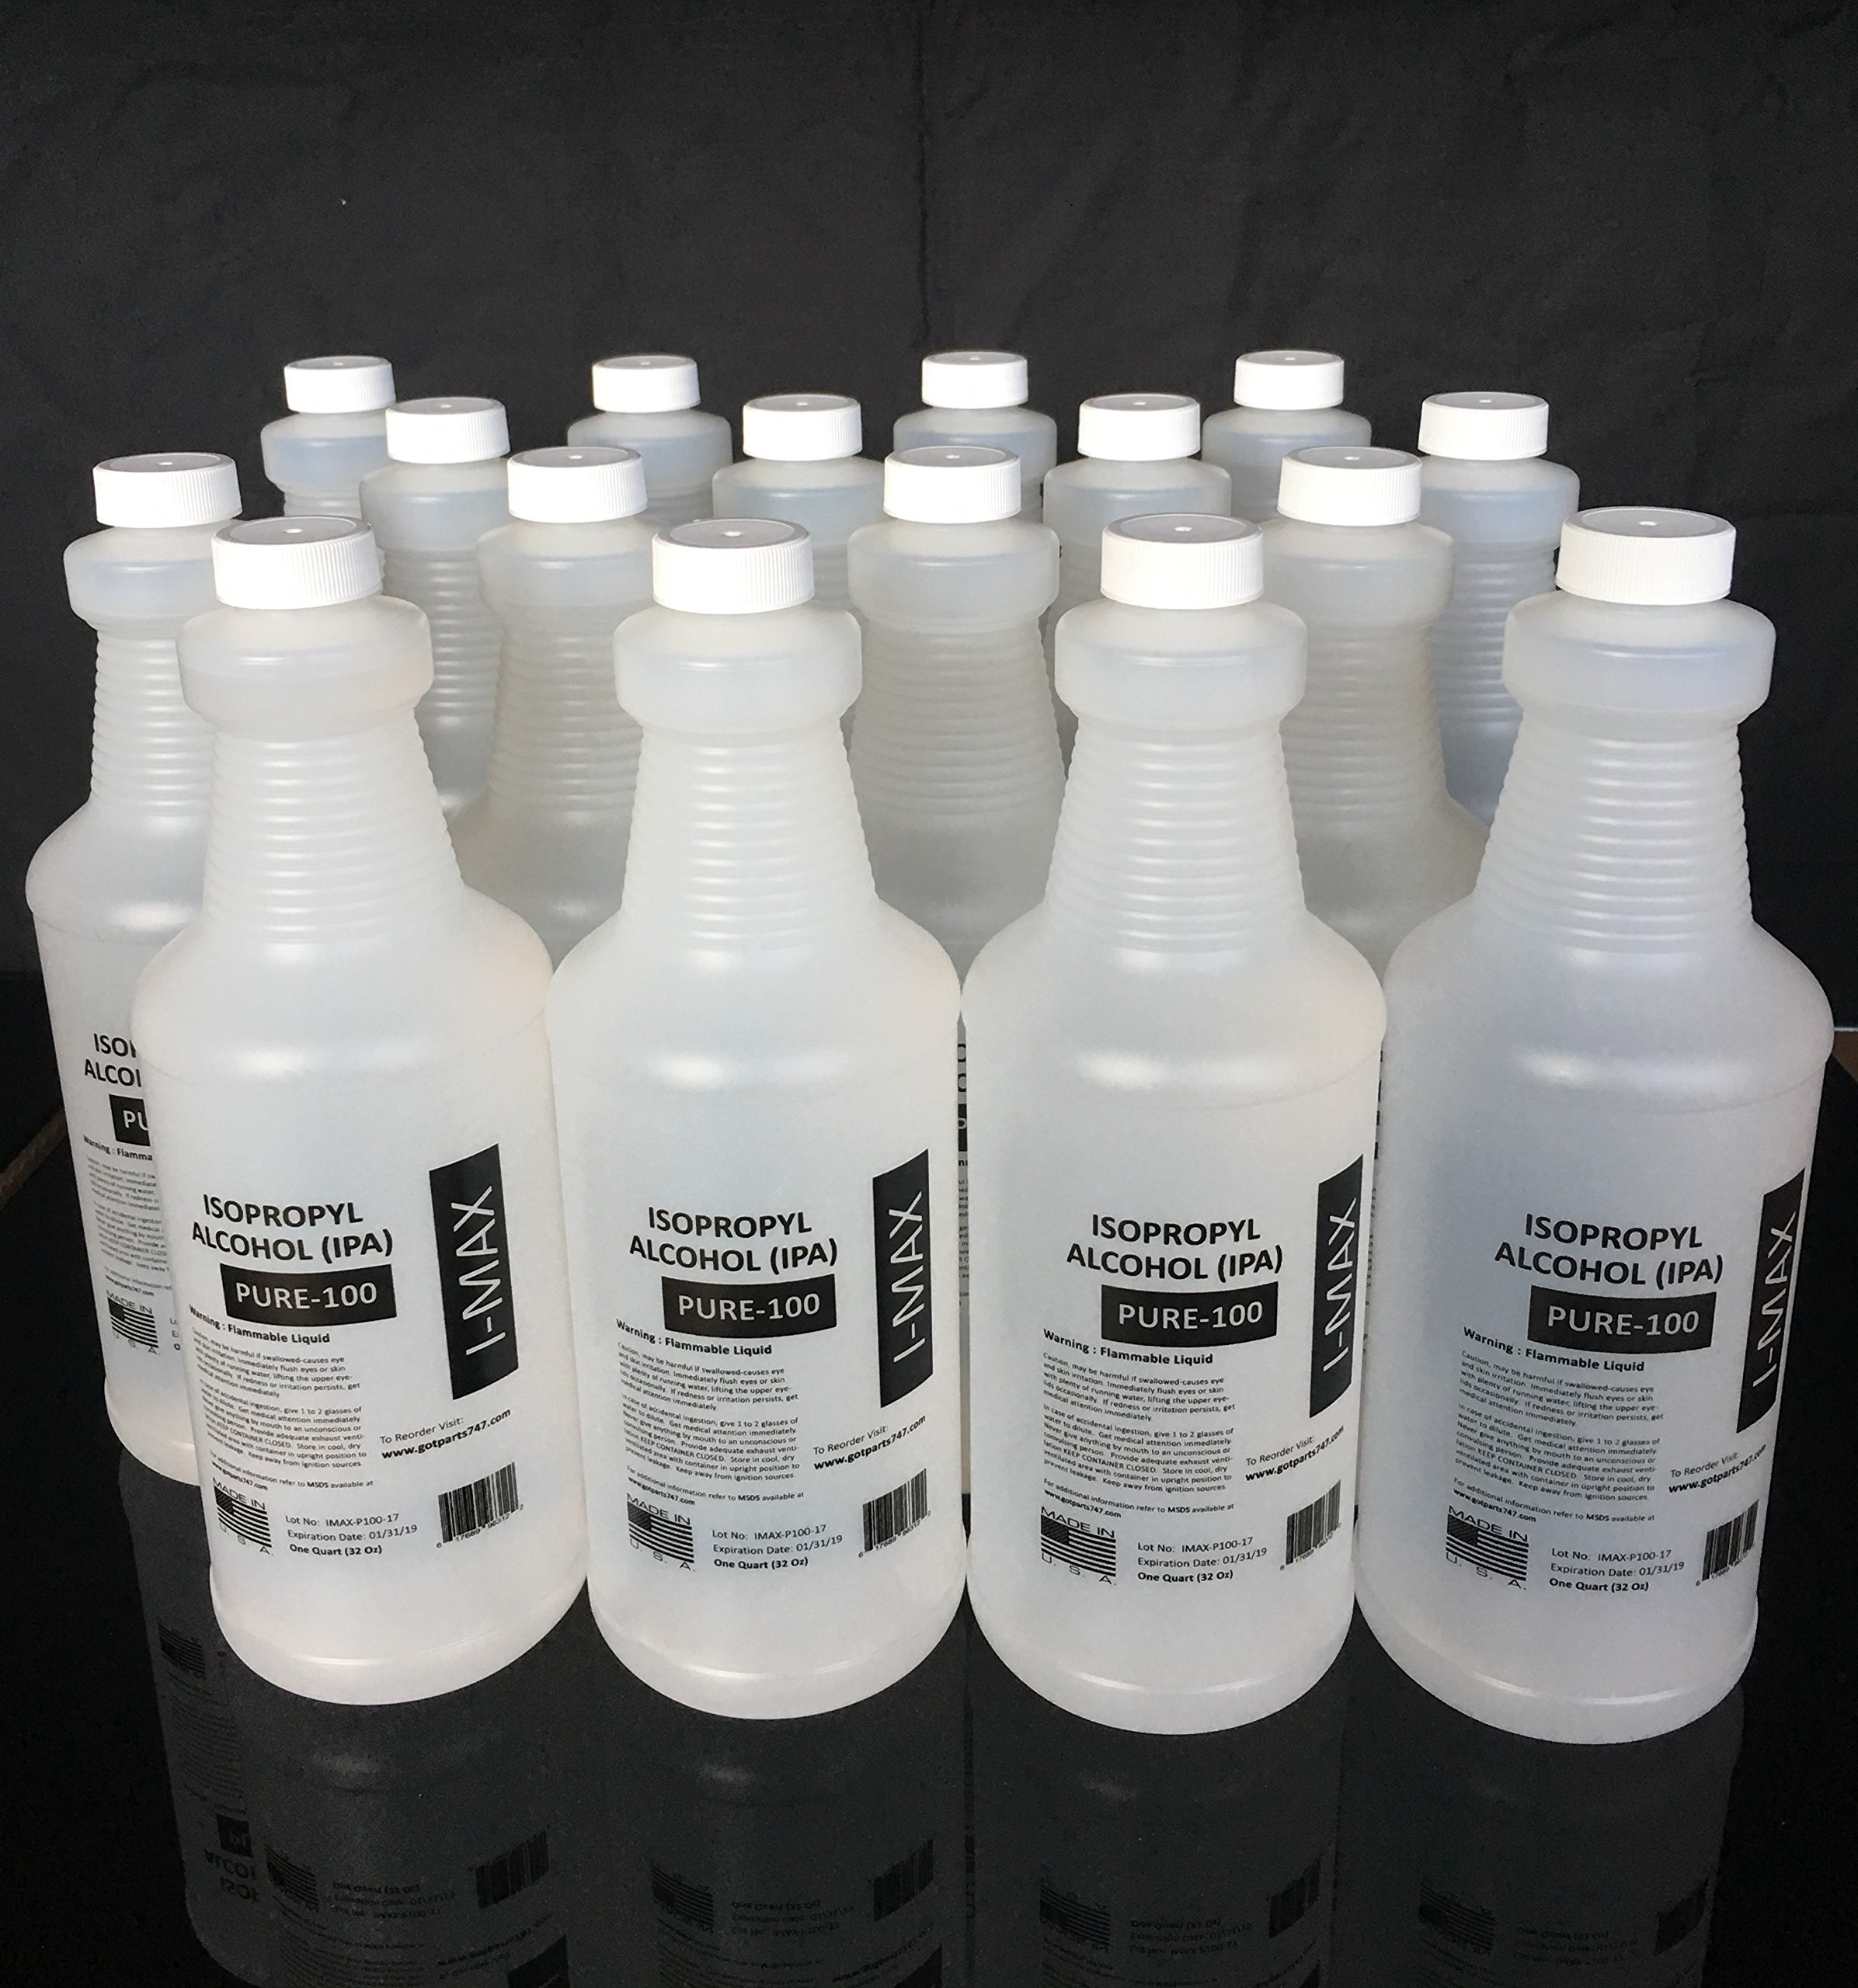 Isopropyl Alcohol 99.5+% - 4 Gallons (16 quarts) 100% Purity - Rubbing Alcohol by Imax